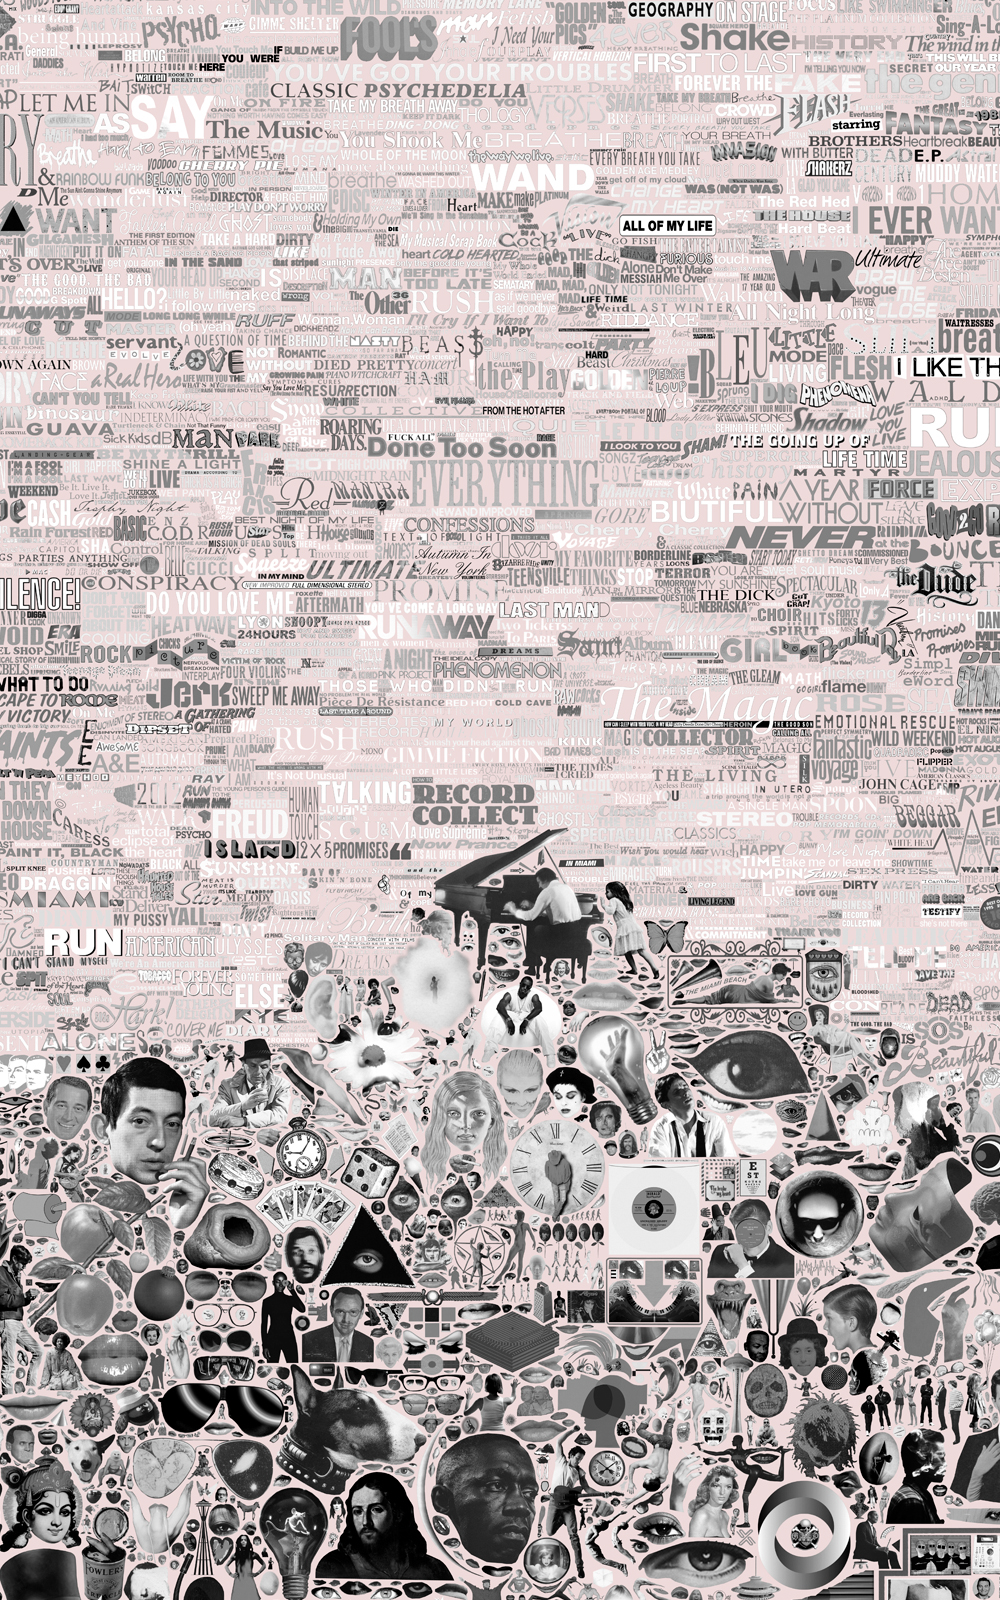 Case Simmons, Simmons & Burke, Album Collection Palette Black and White on Pink, Album Art, Record Cover Collection,C-Print, Digital Collage,Digital Art, Photoshop Collage, Contemporary Collage,Case Simmons Art, Collage Fine Art, Kohn Gallery, Collection Art, Archive Art